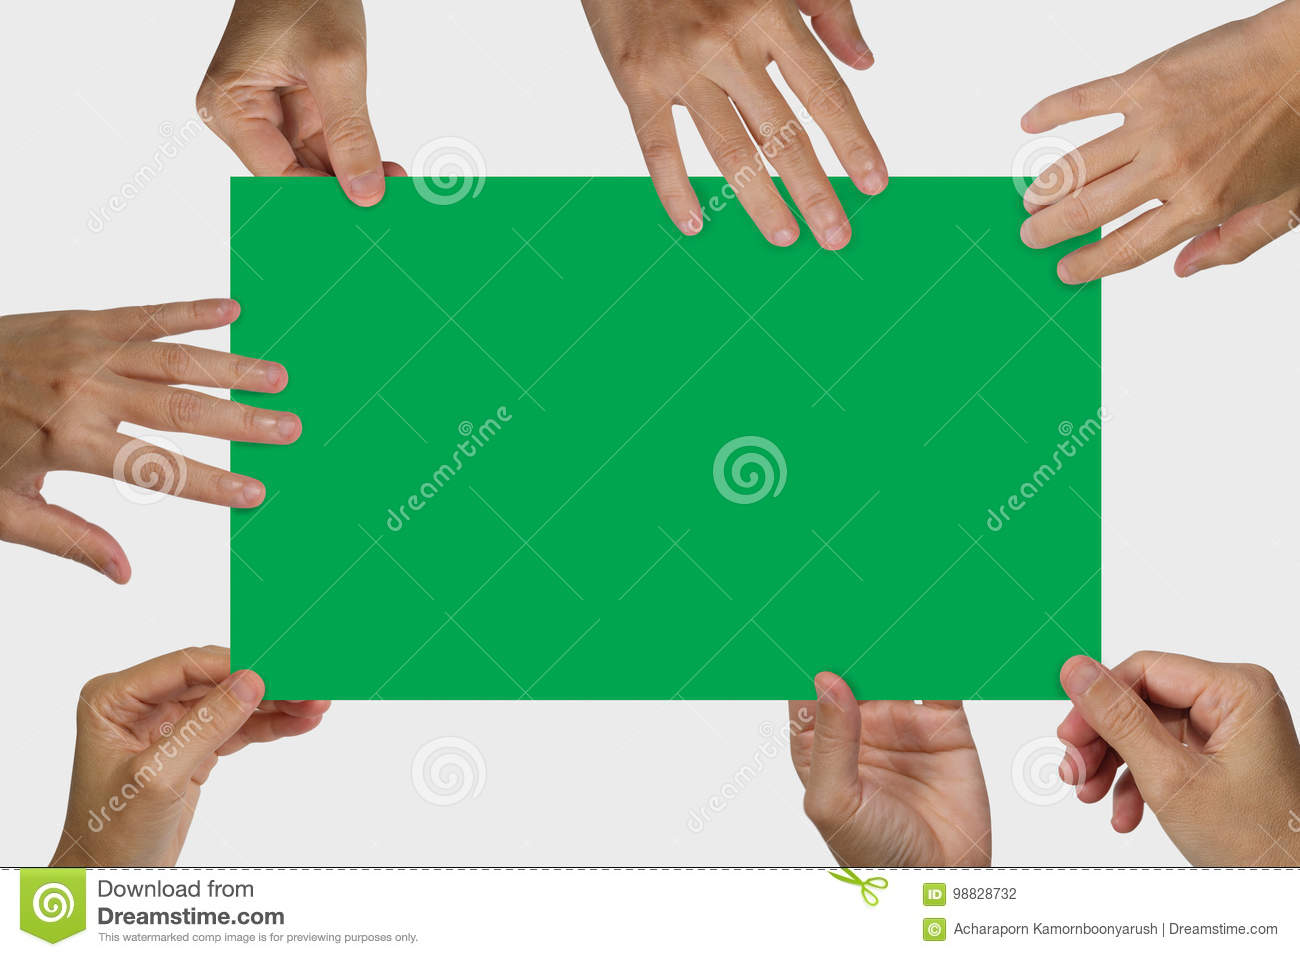 Many hands holding a white blank poster